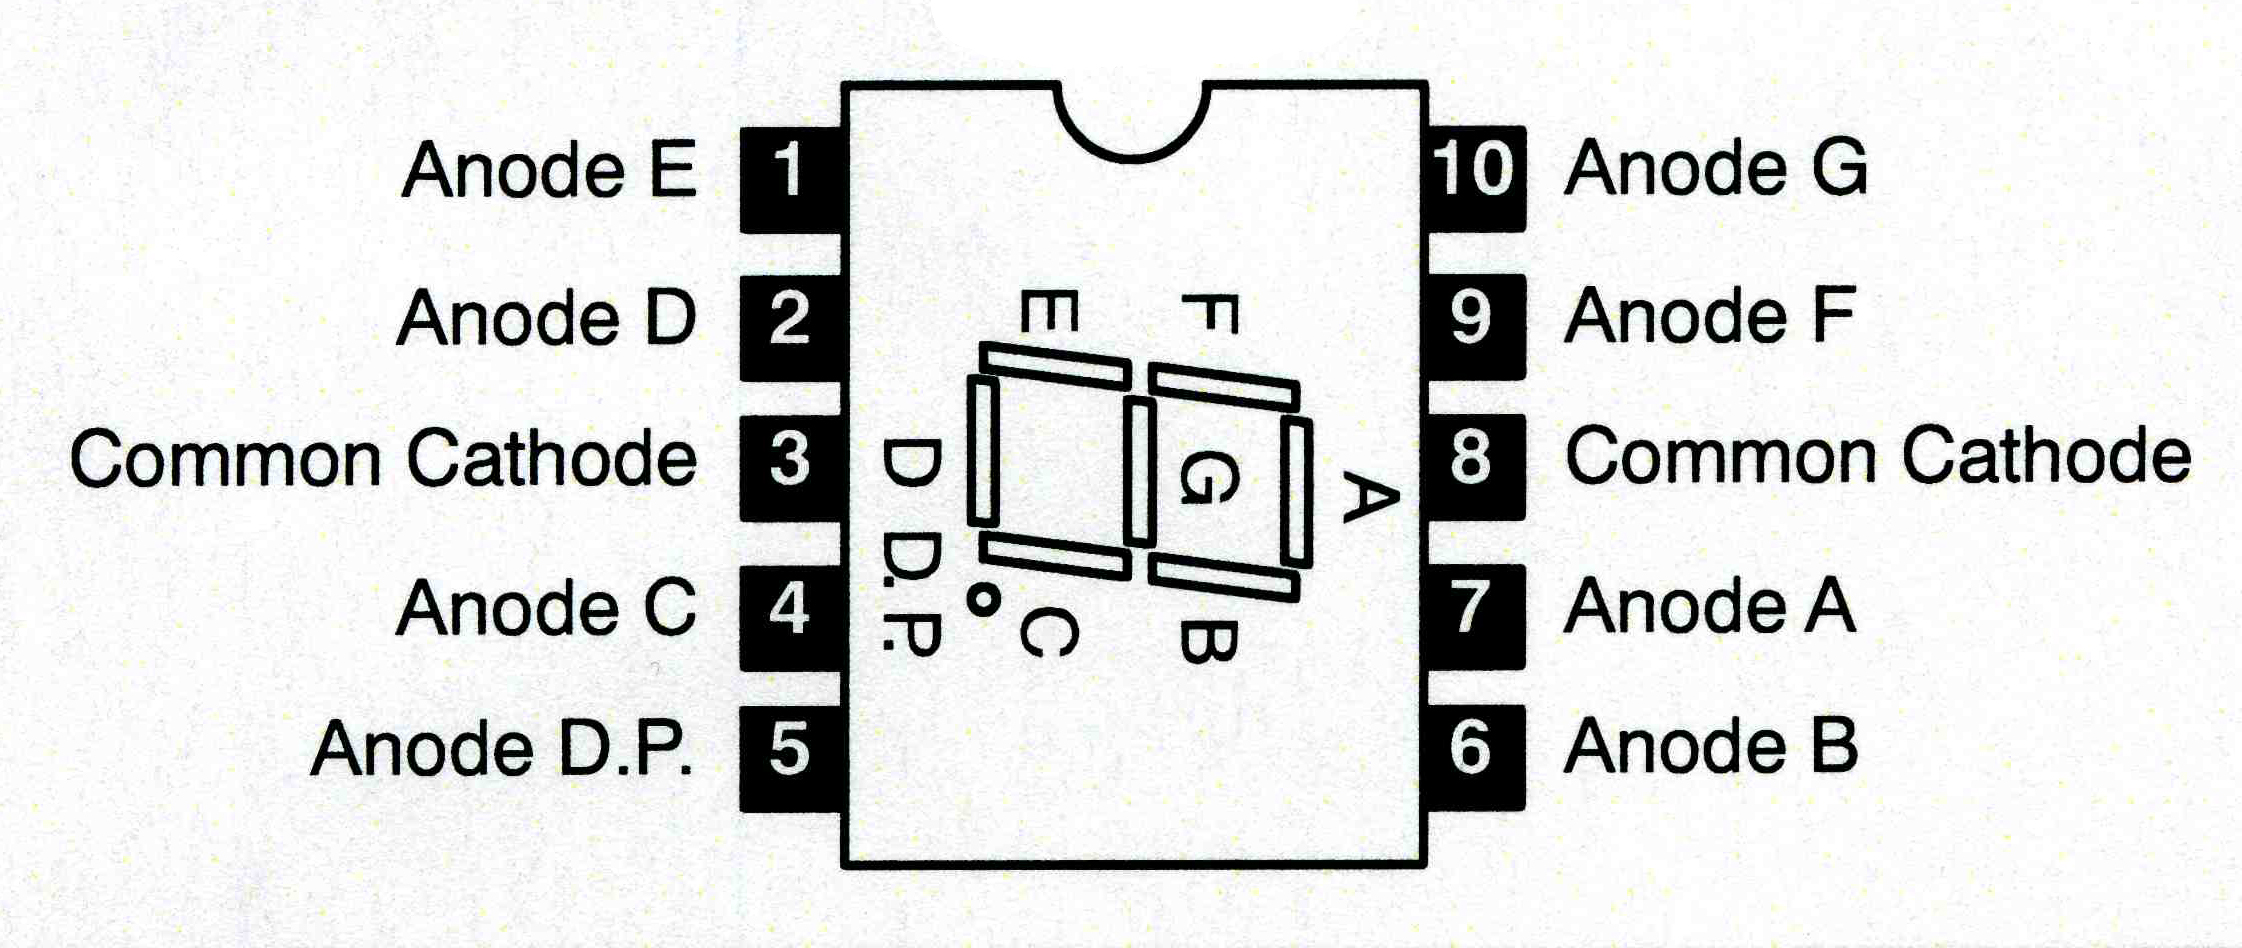 Wiring Diagram For A Vip 222k Receiver Wiring Diagram